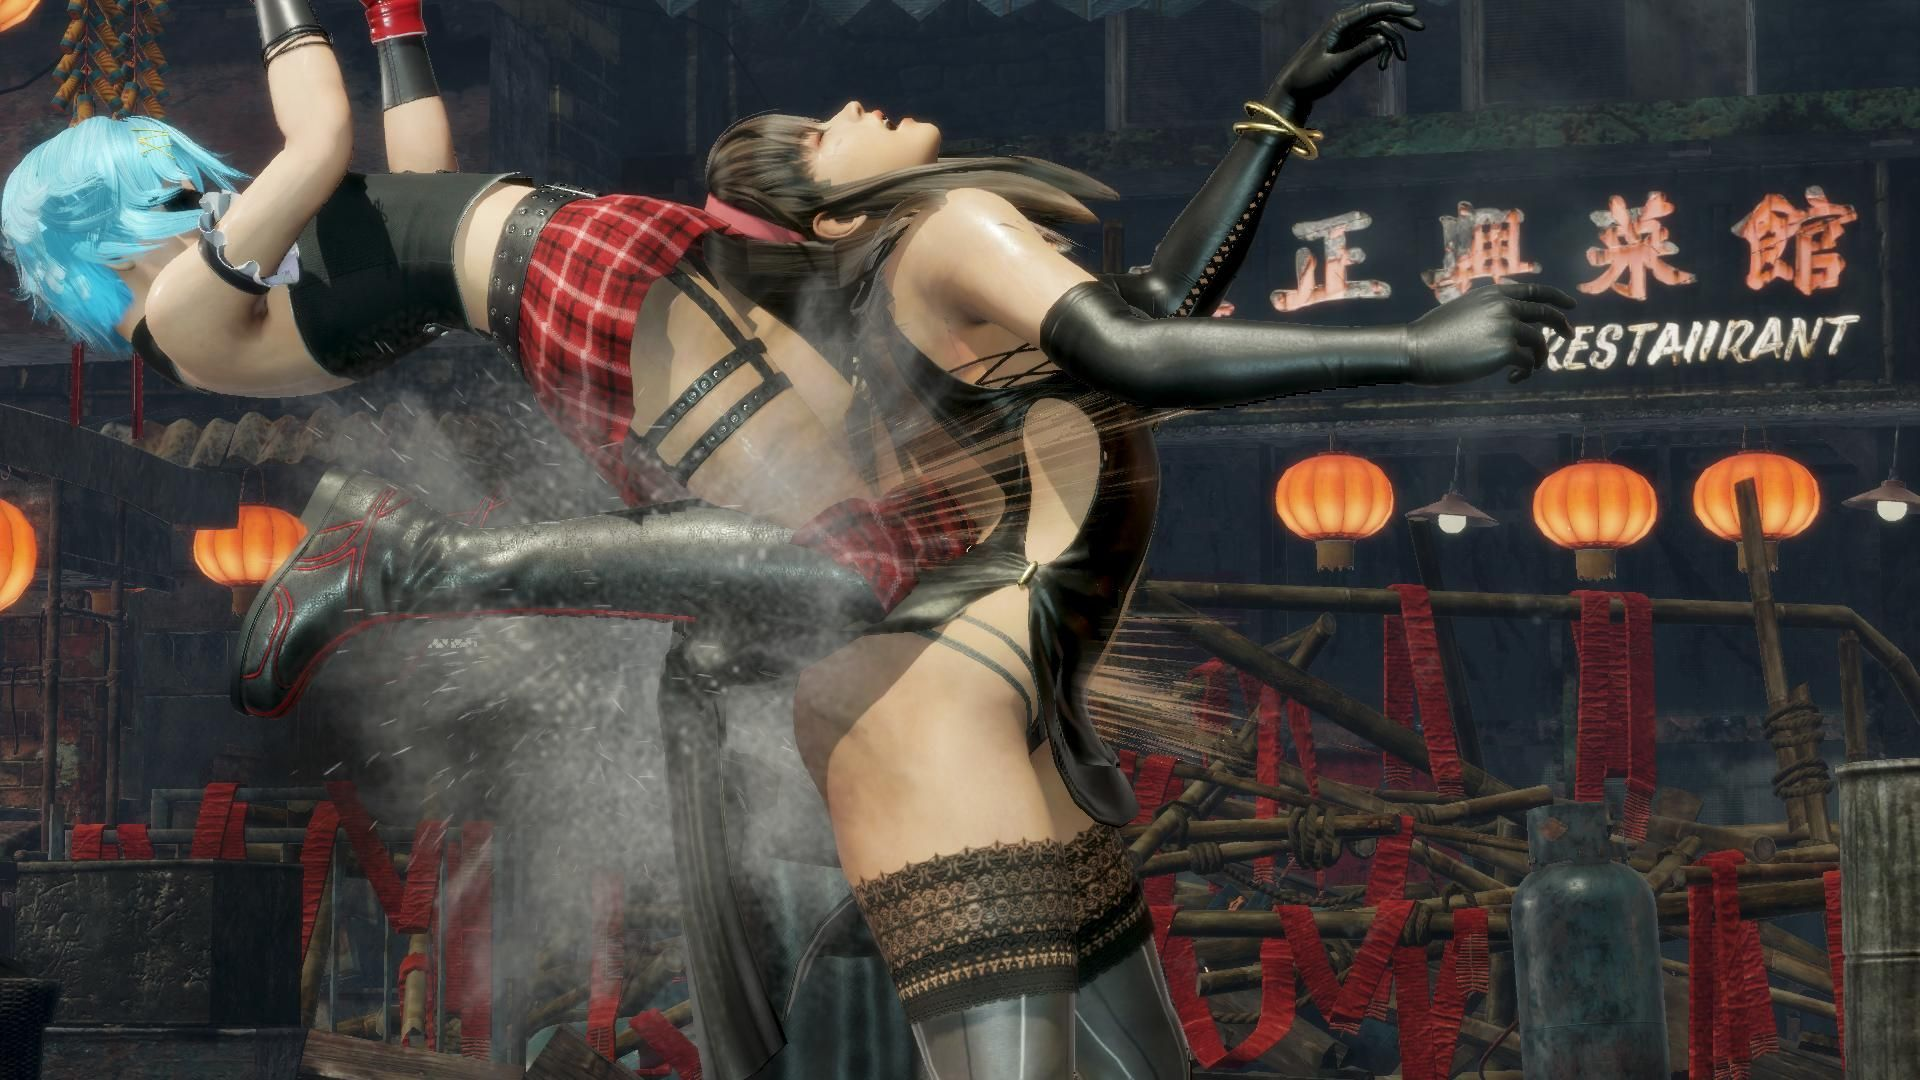 Chinese Festival - Dead or Alive 6